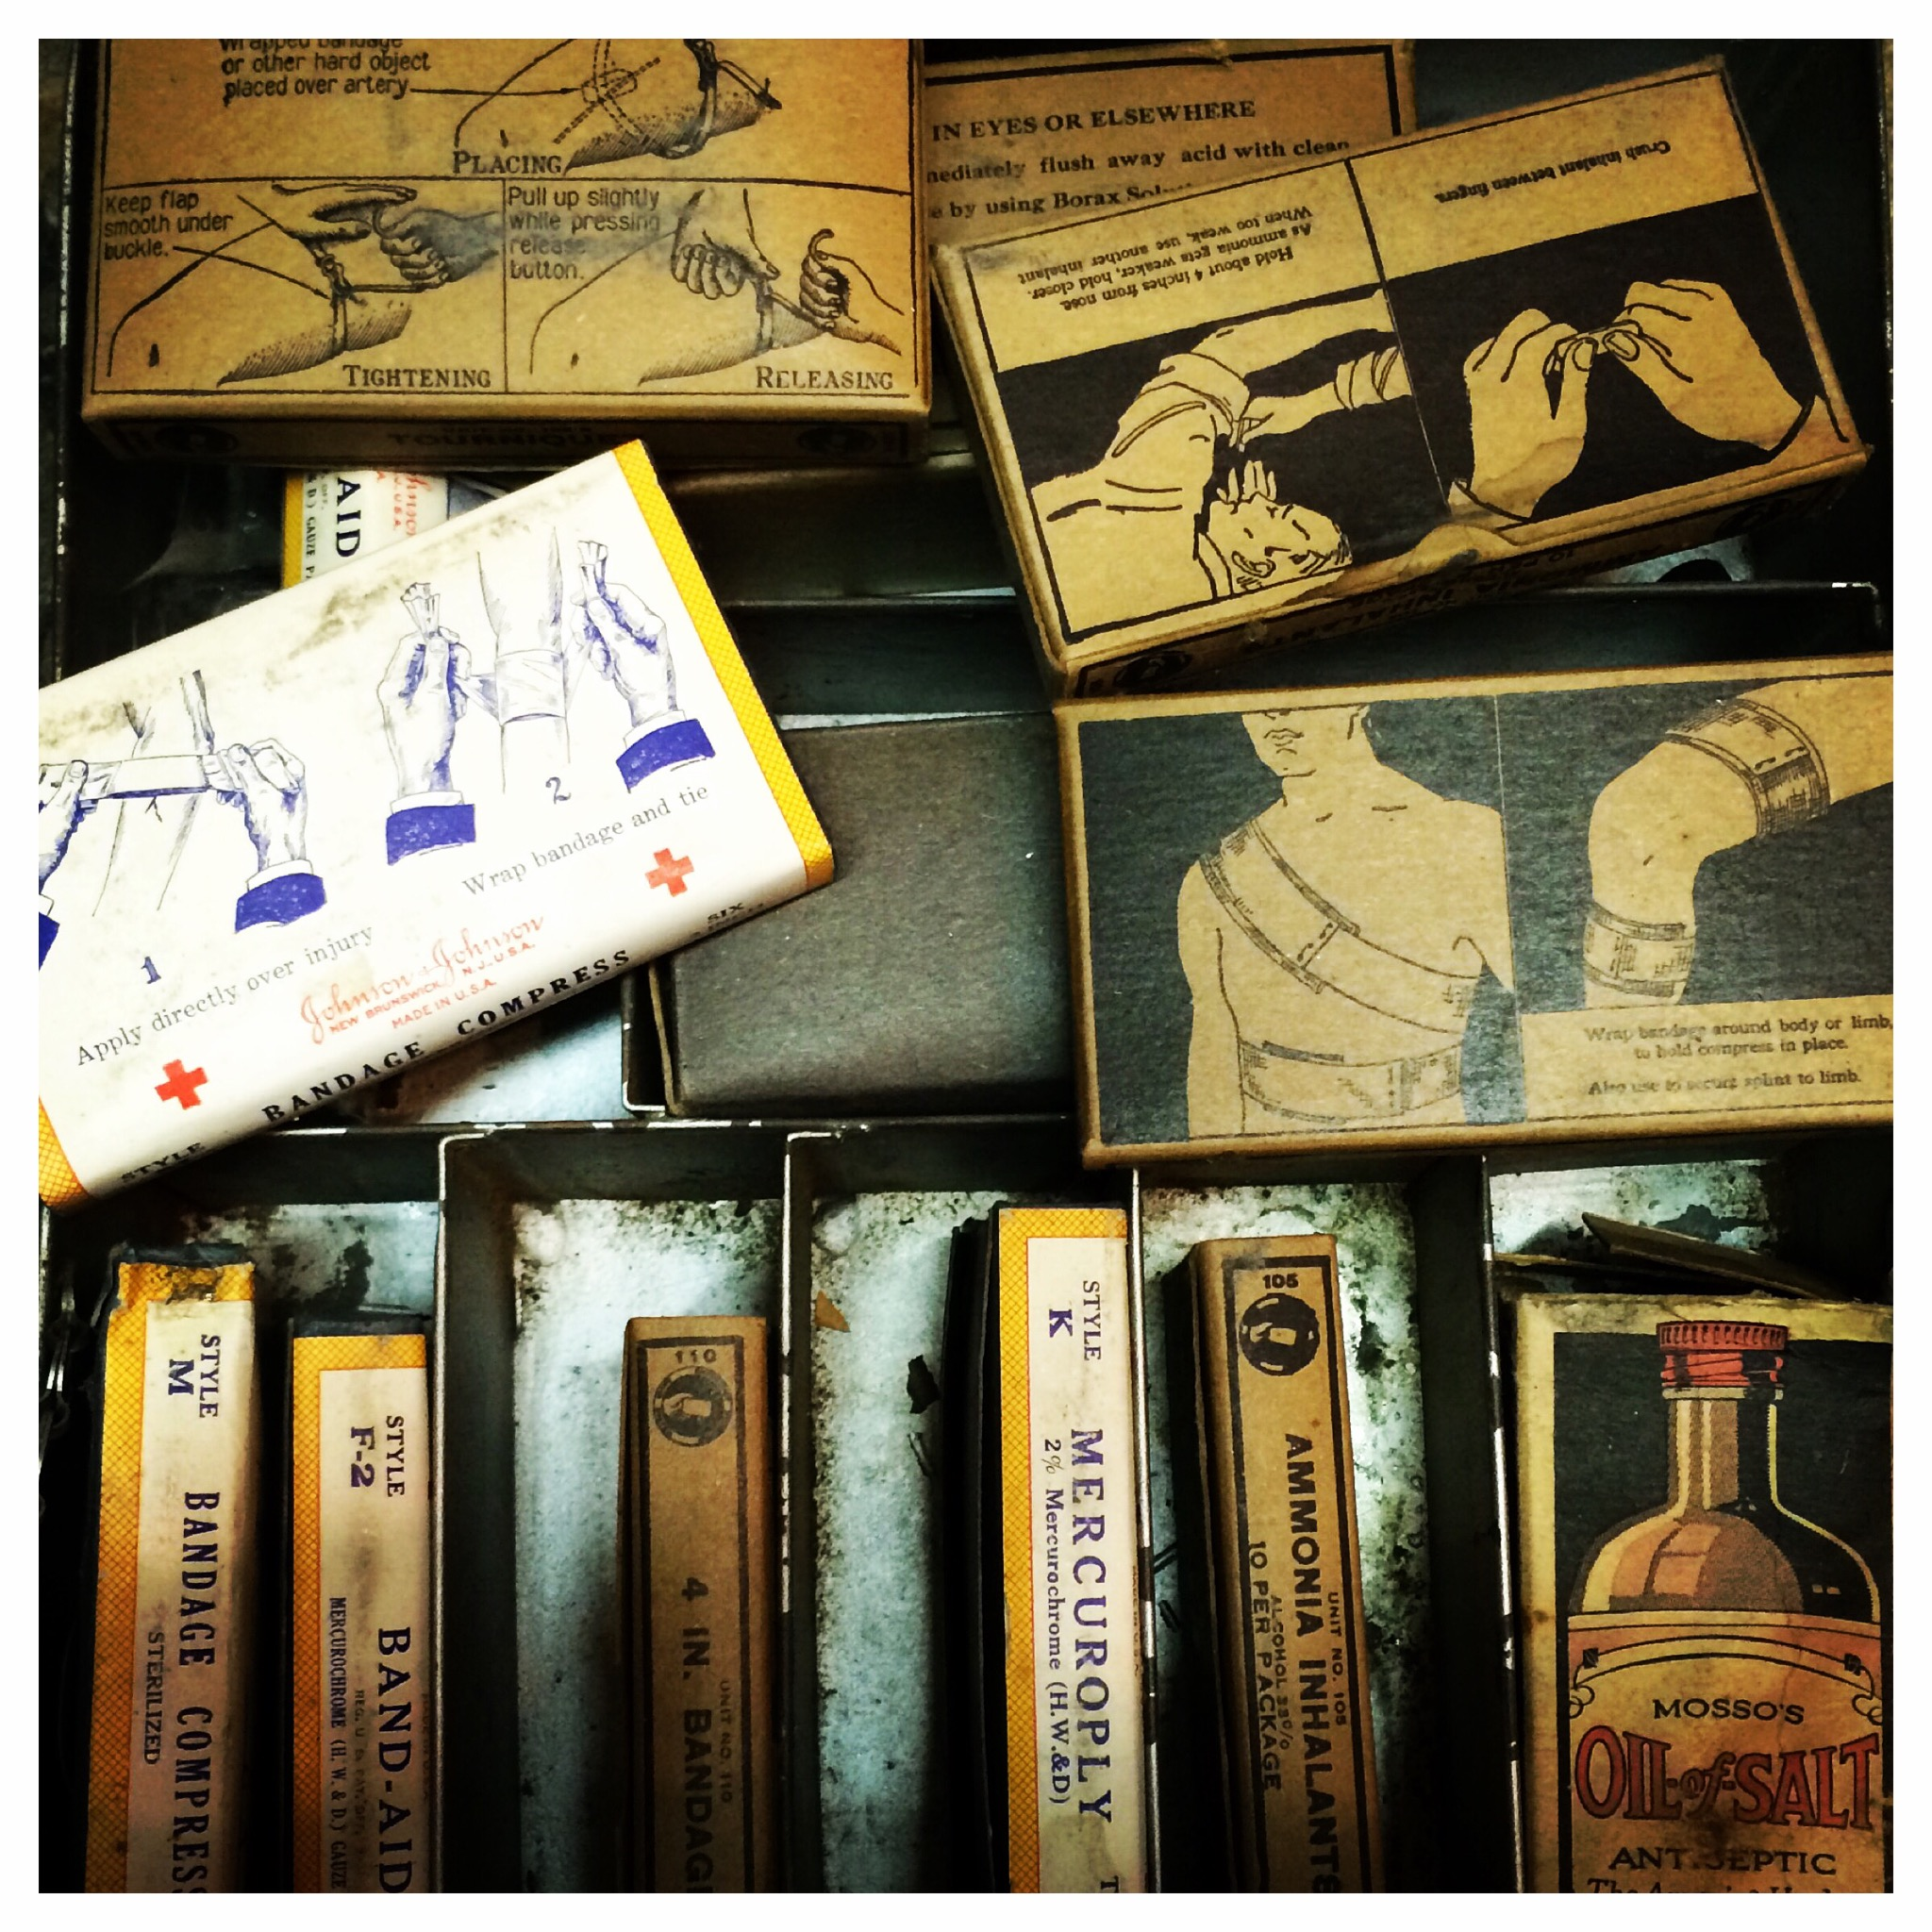 antique first aid kit